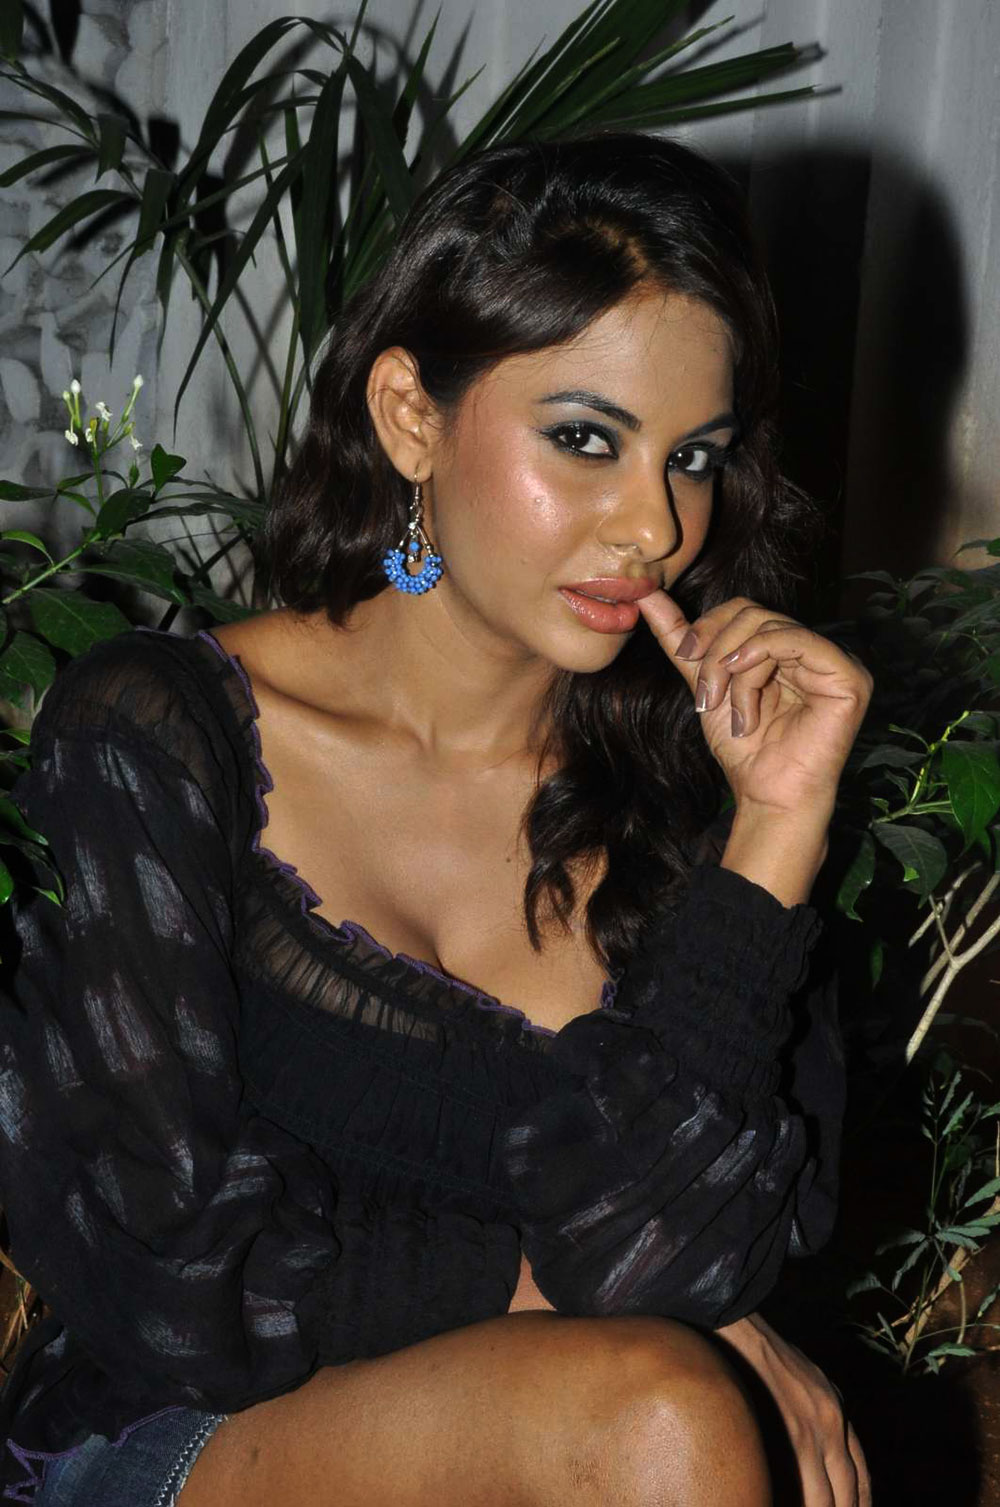 actresses nudes (78 foto) Young, YouTube, cleavage